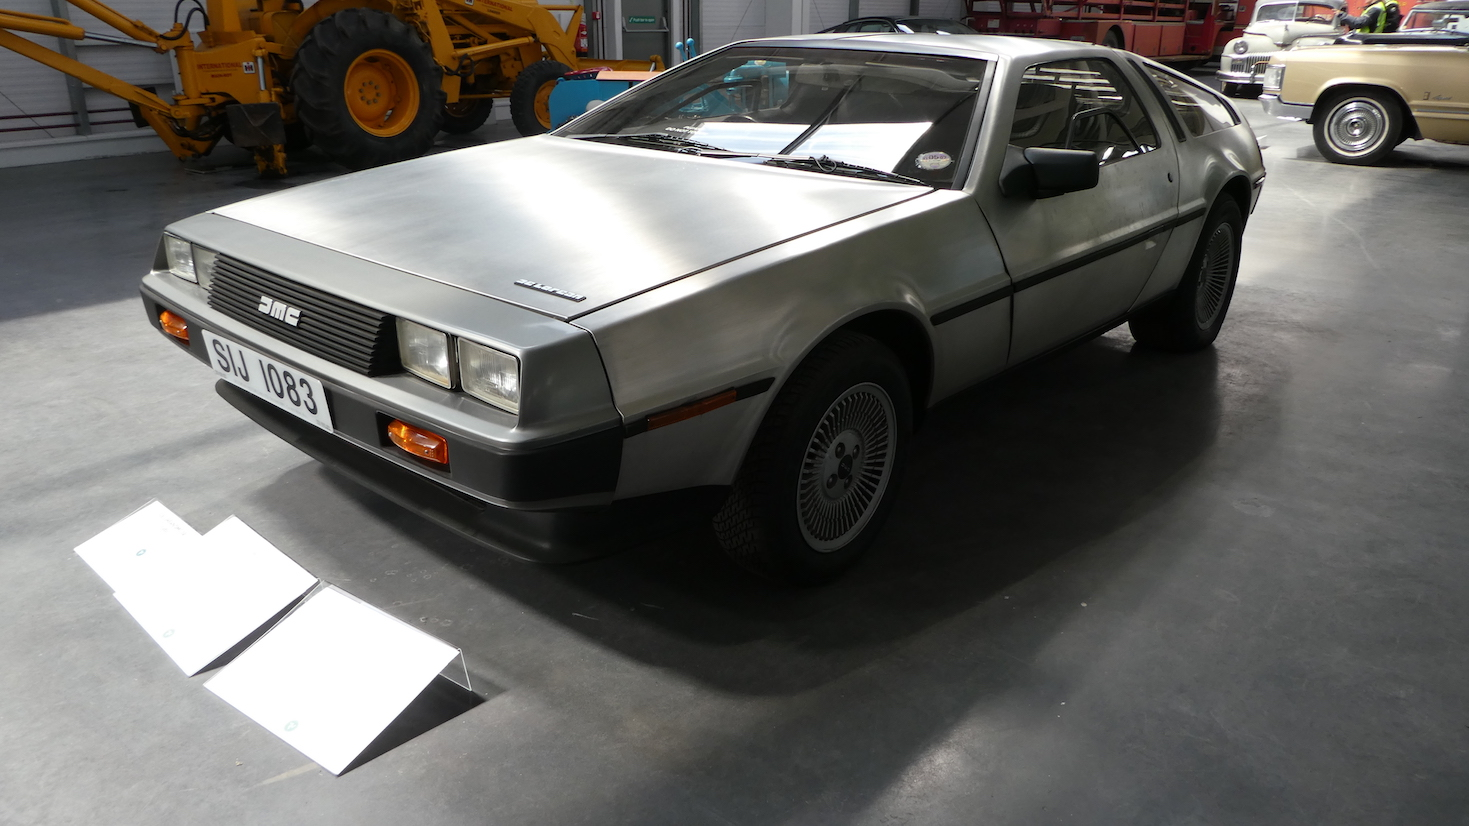 Don't forget the Flux Capacitor - Isle of Man Motor Museum